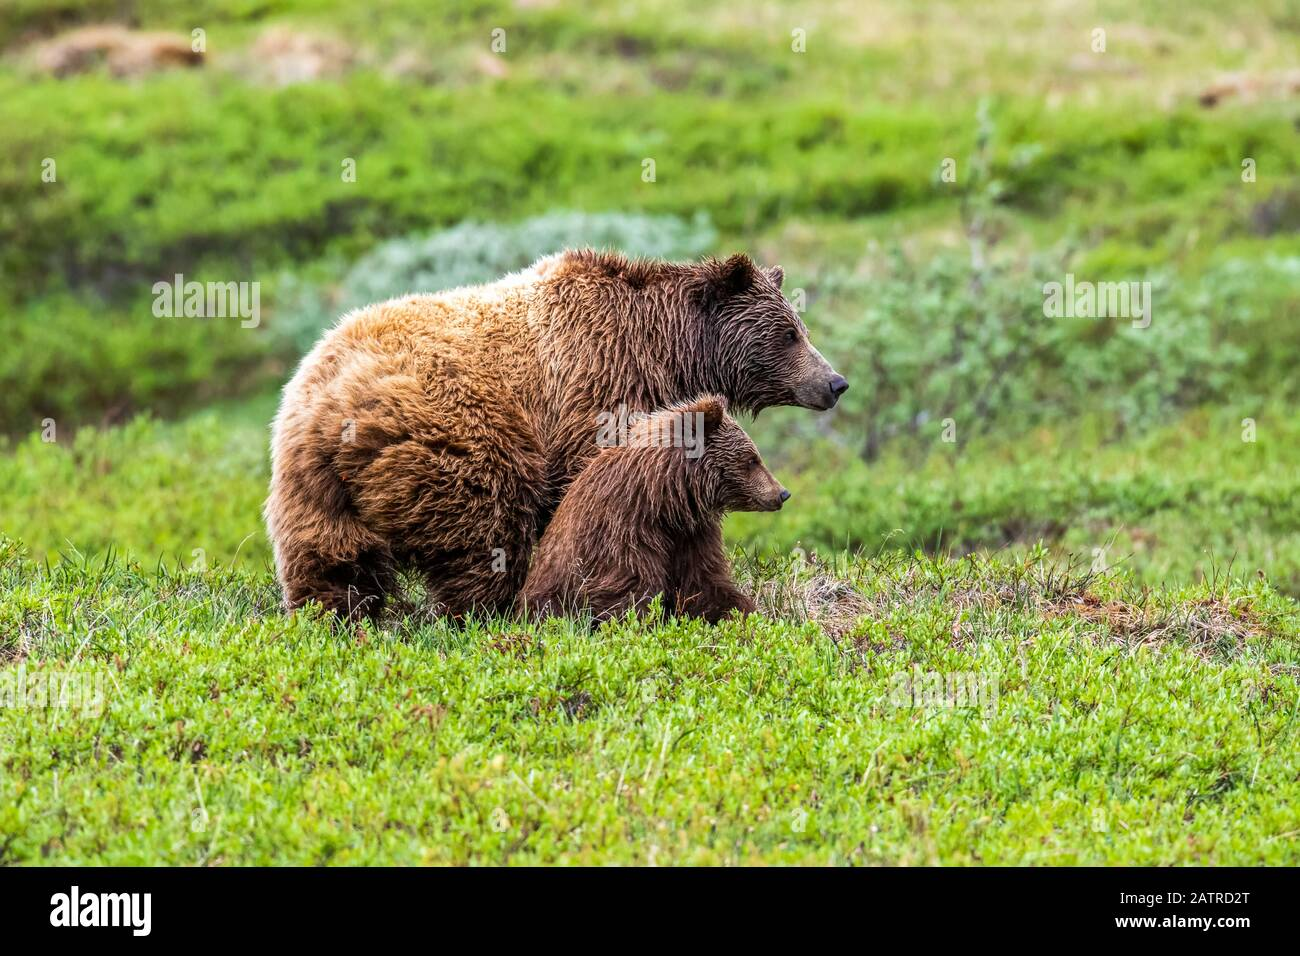 Grizzly bear (Ursus arctos horribilis) sow and cub on tundra, Denali National Park and Preserve; Alaska, United States of America Stock Photo